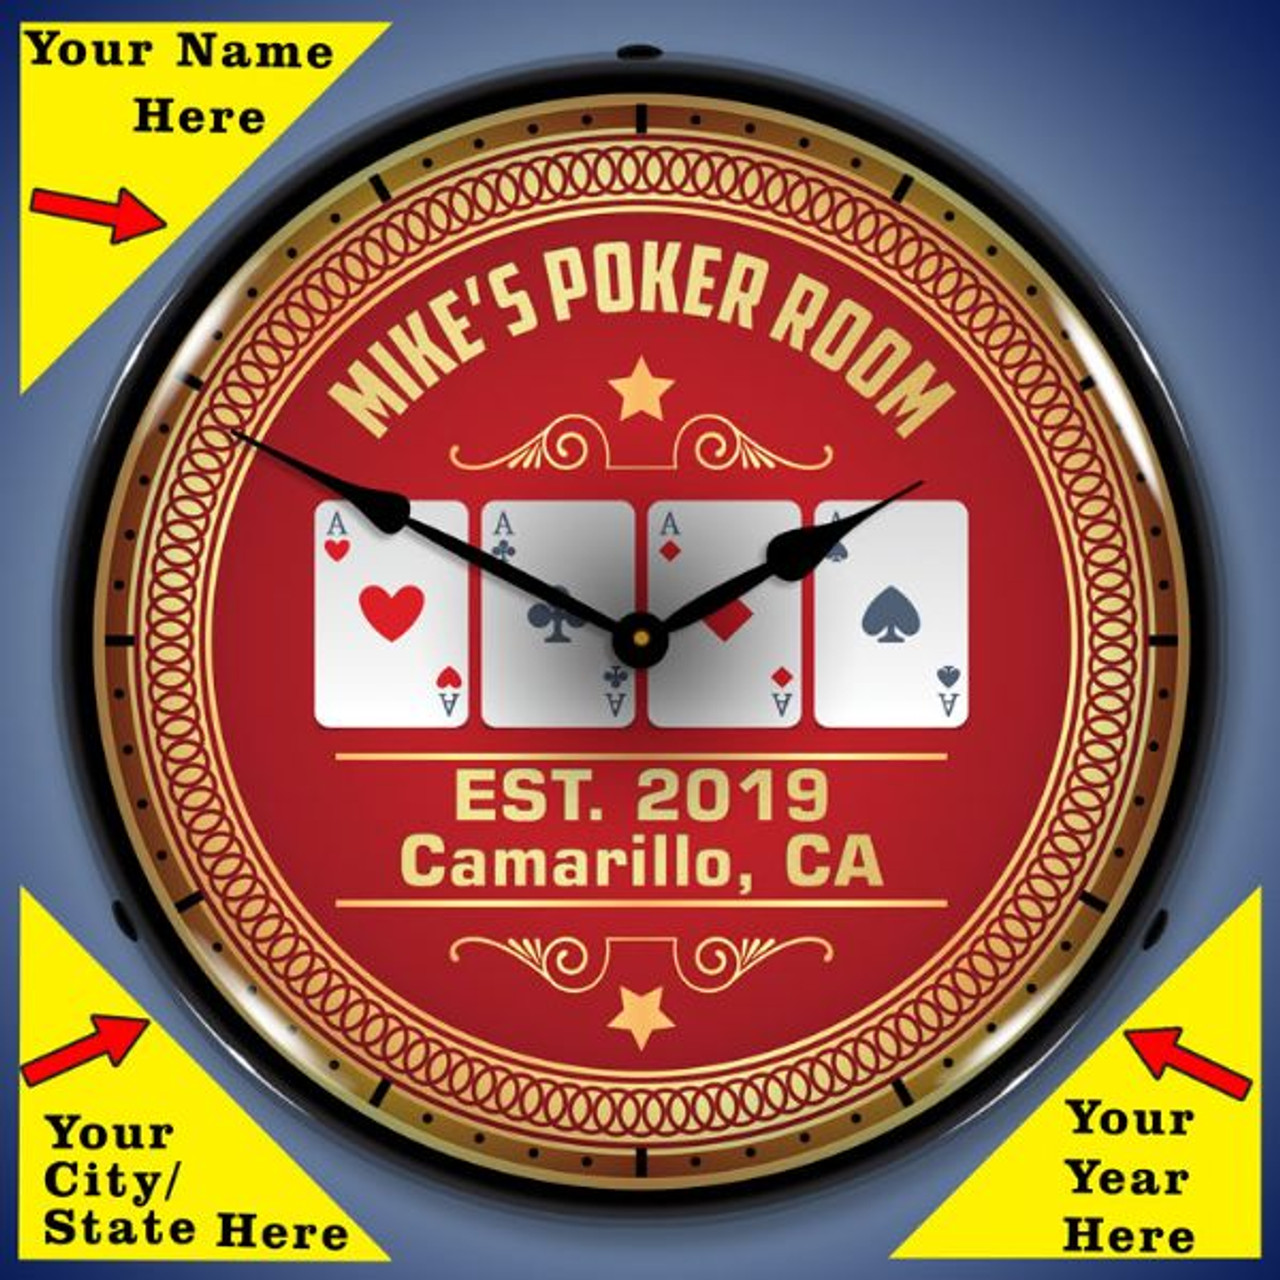 Personalized Poker Room LED Lighted Wall Clock 14 x 14 Inches